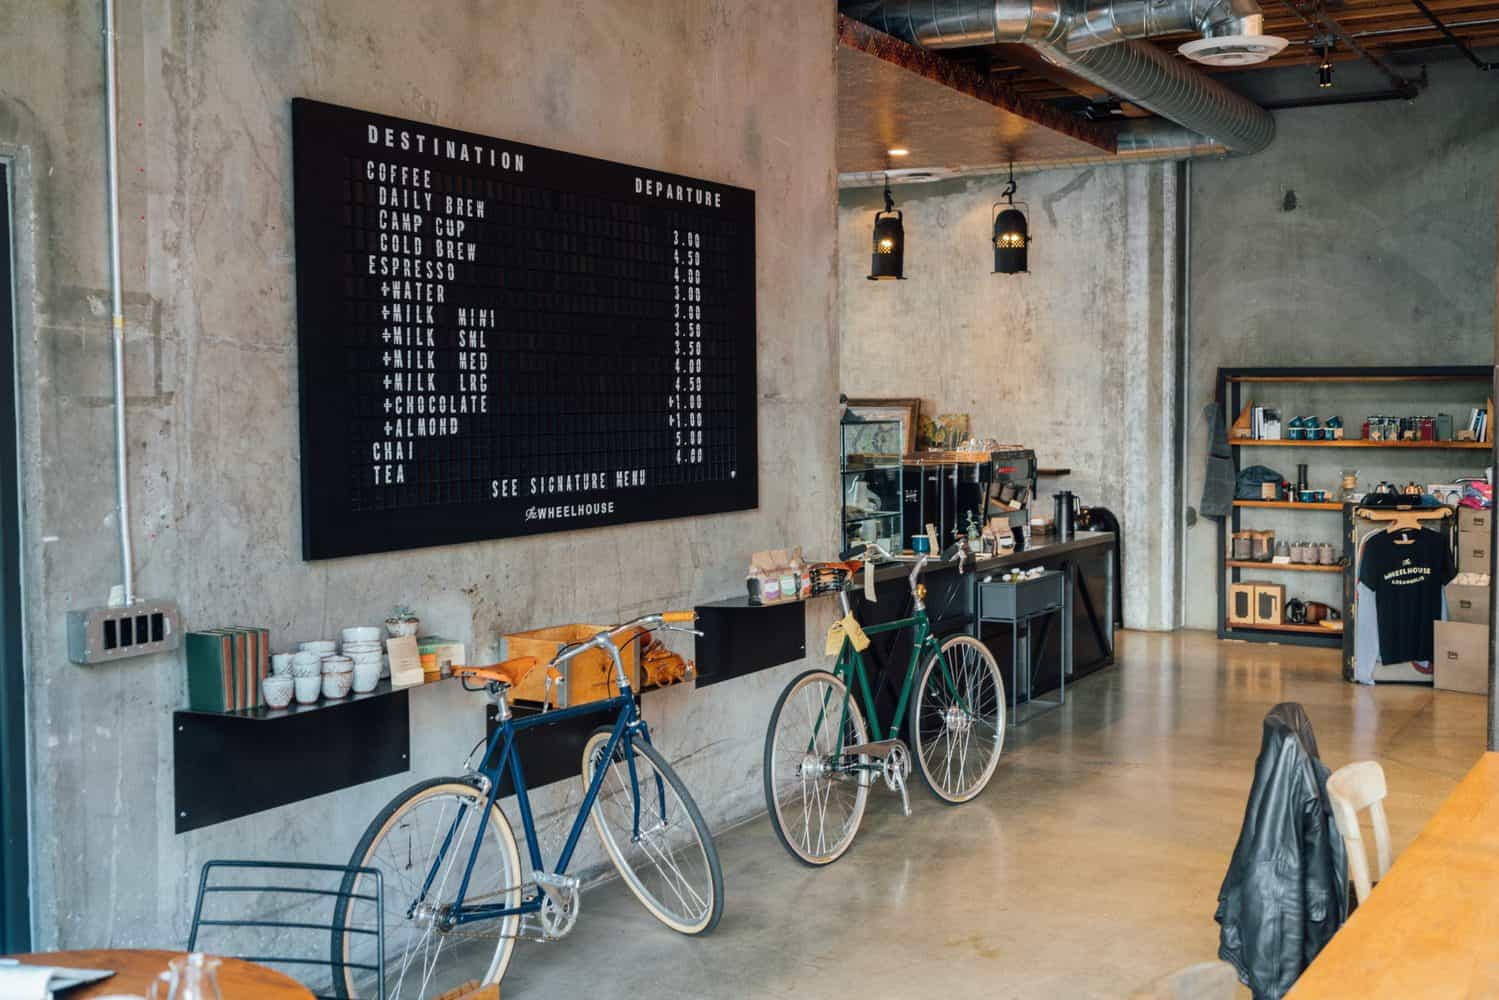 Specialty coffee cafe